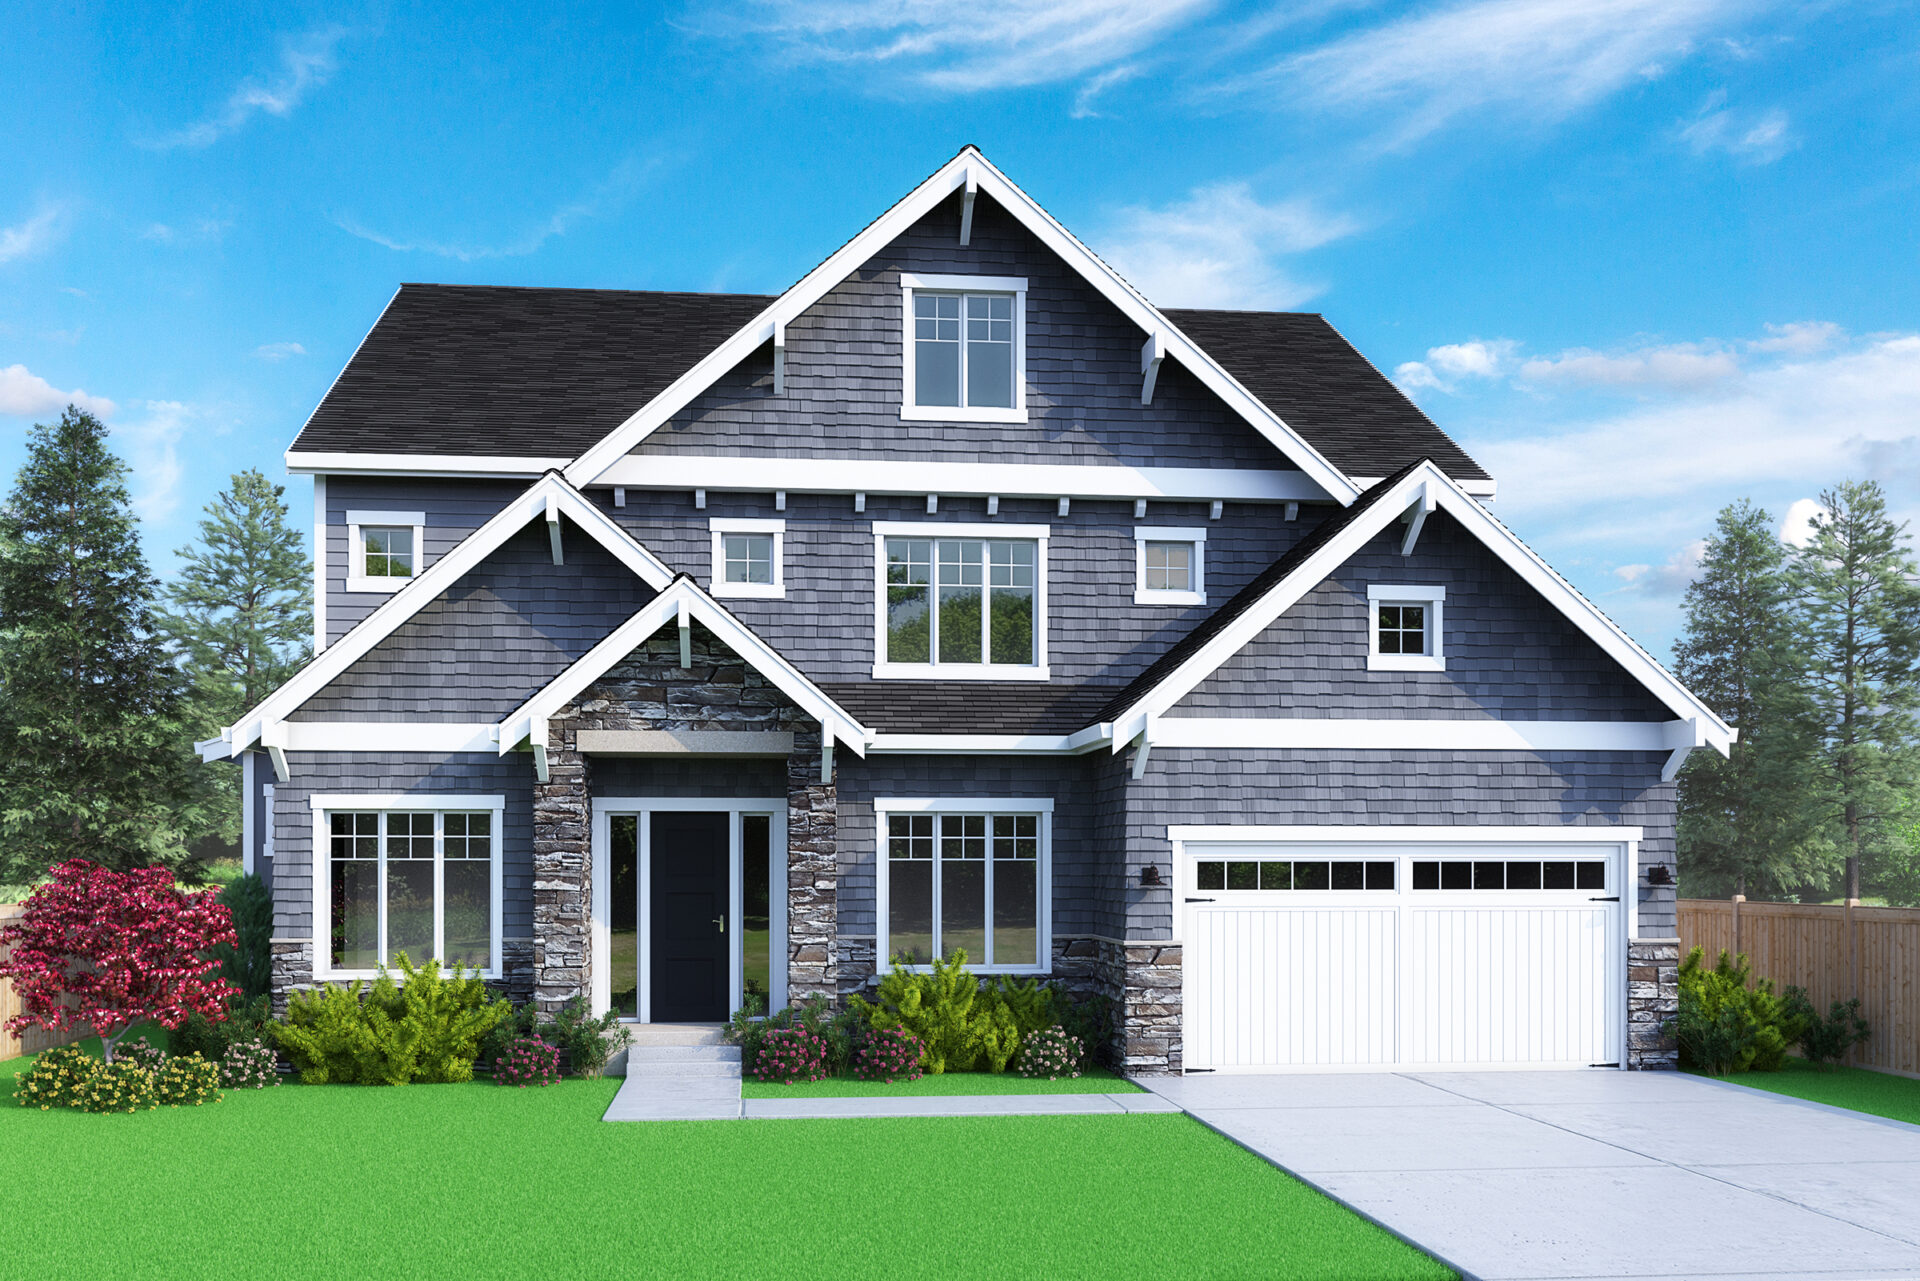 View our new luxury home construction on3759 146th Ave SE, in Bellevue, WA from MN Custom Homes